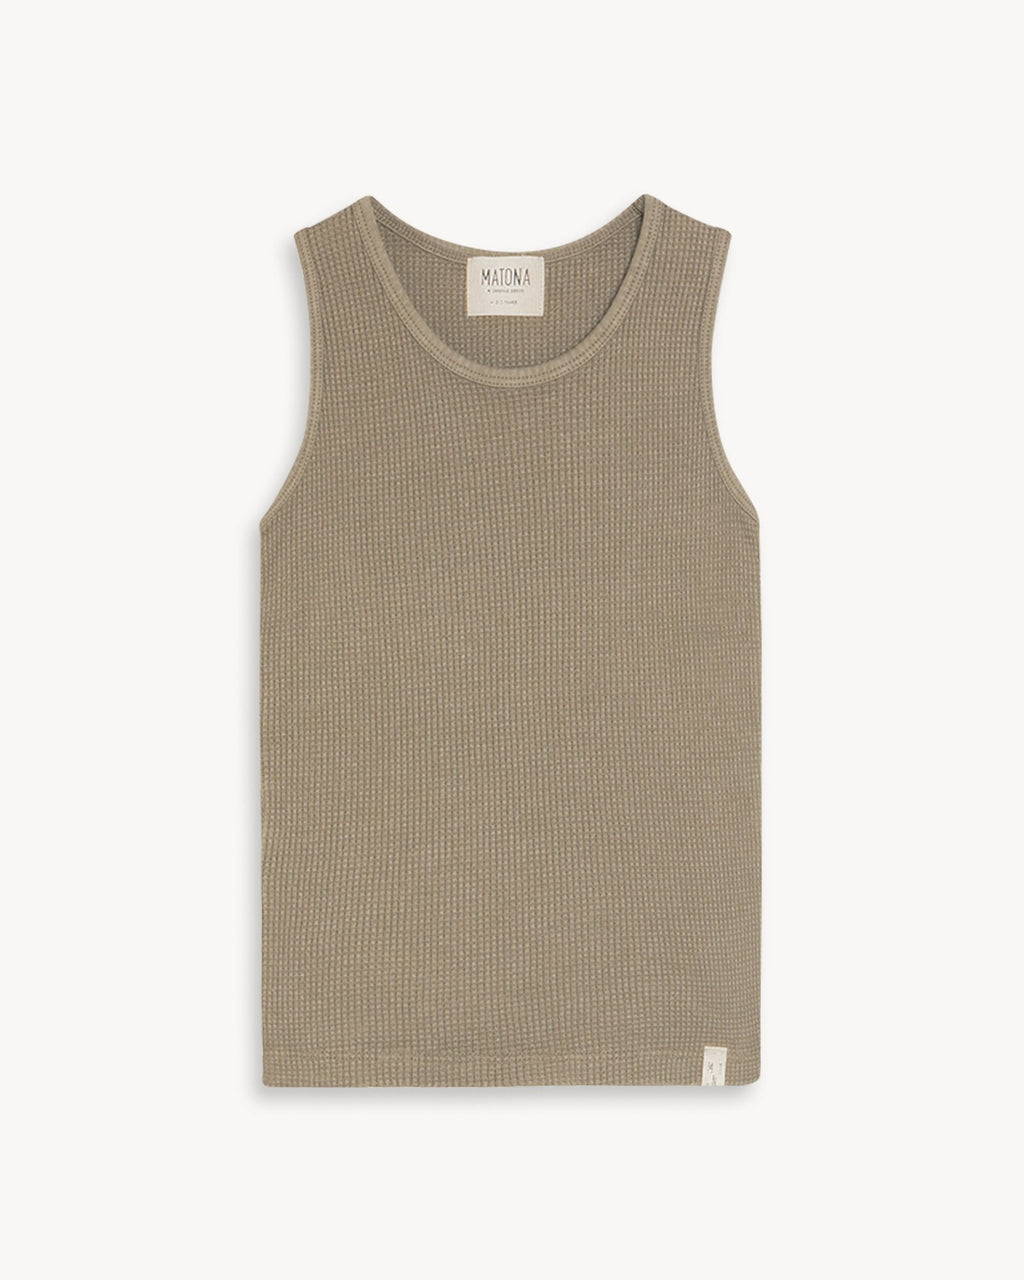 variant_1 | EN Shirt Tanktop Underwear Shirt Olive Green Darkgreen Toddlers Kids MATONA | DE Tanktop Shirt Unterhemd Olive Grün Dunkelgrün Erdtöne Erdfarben Kleinkinder Kinder MATONA